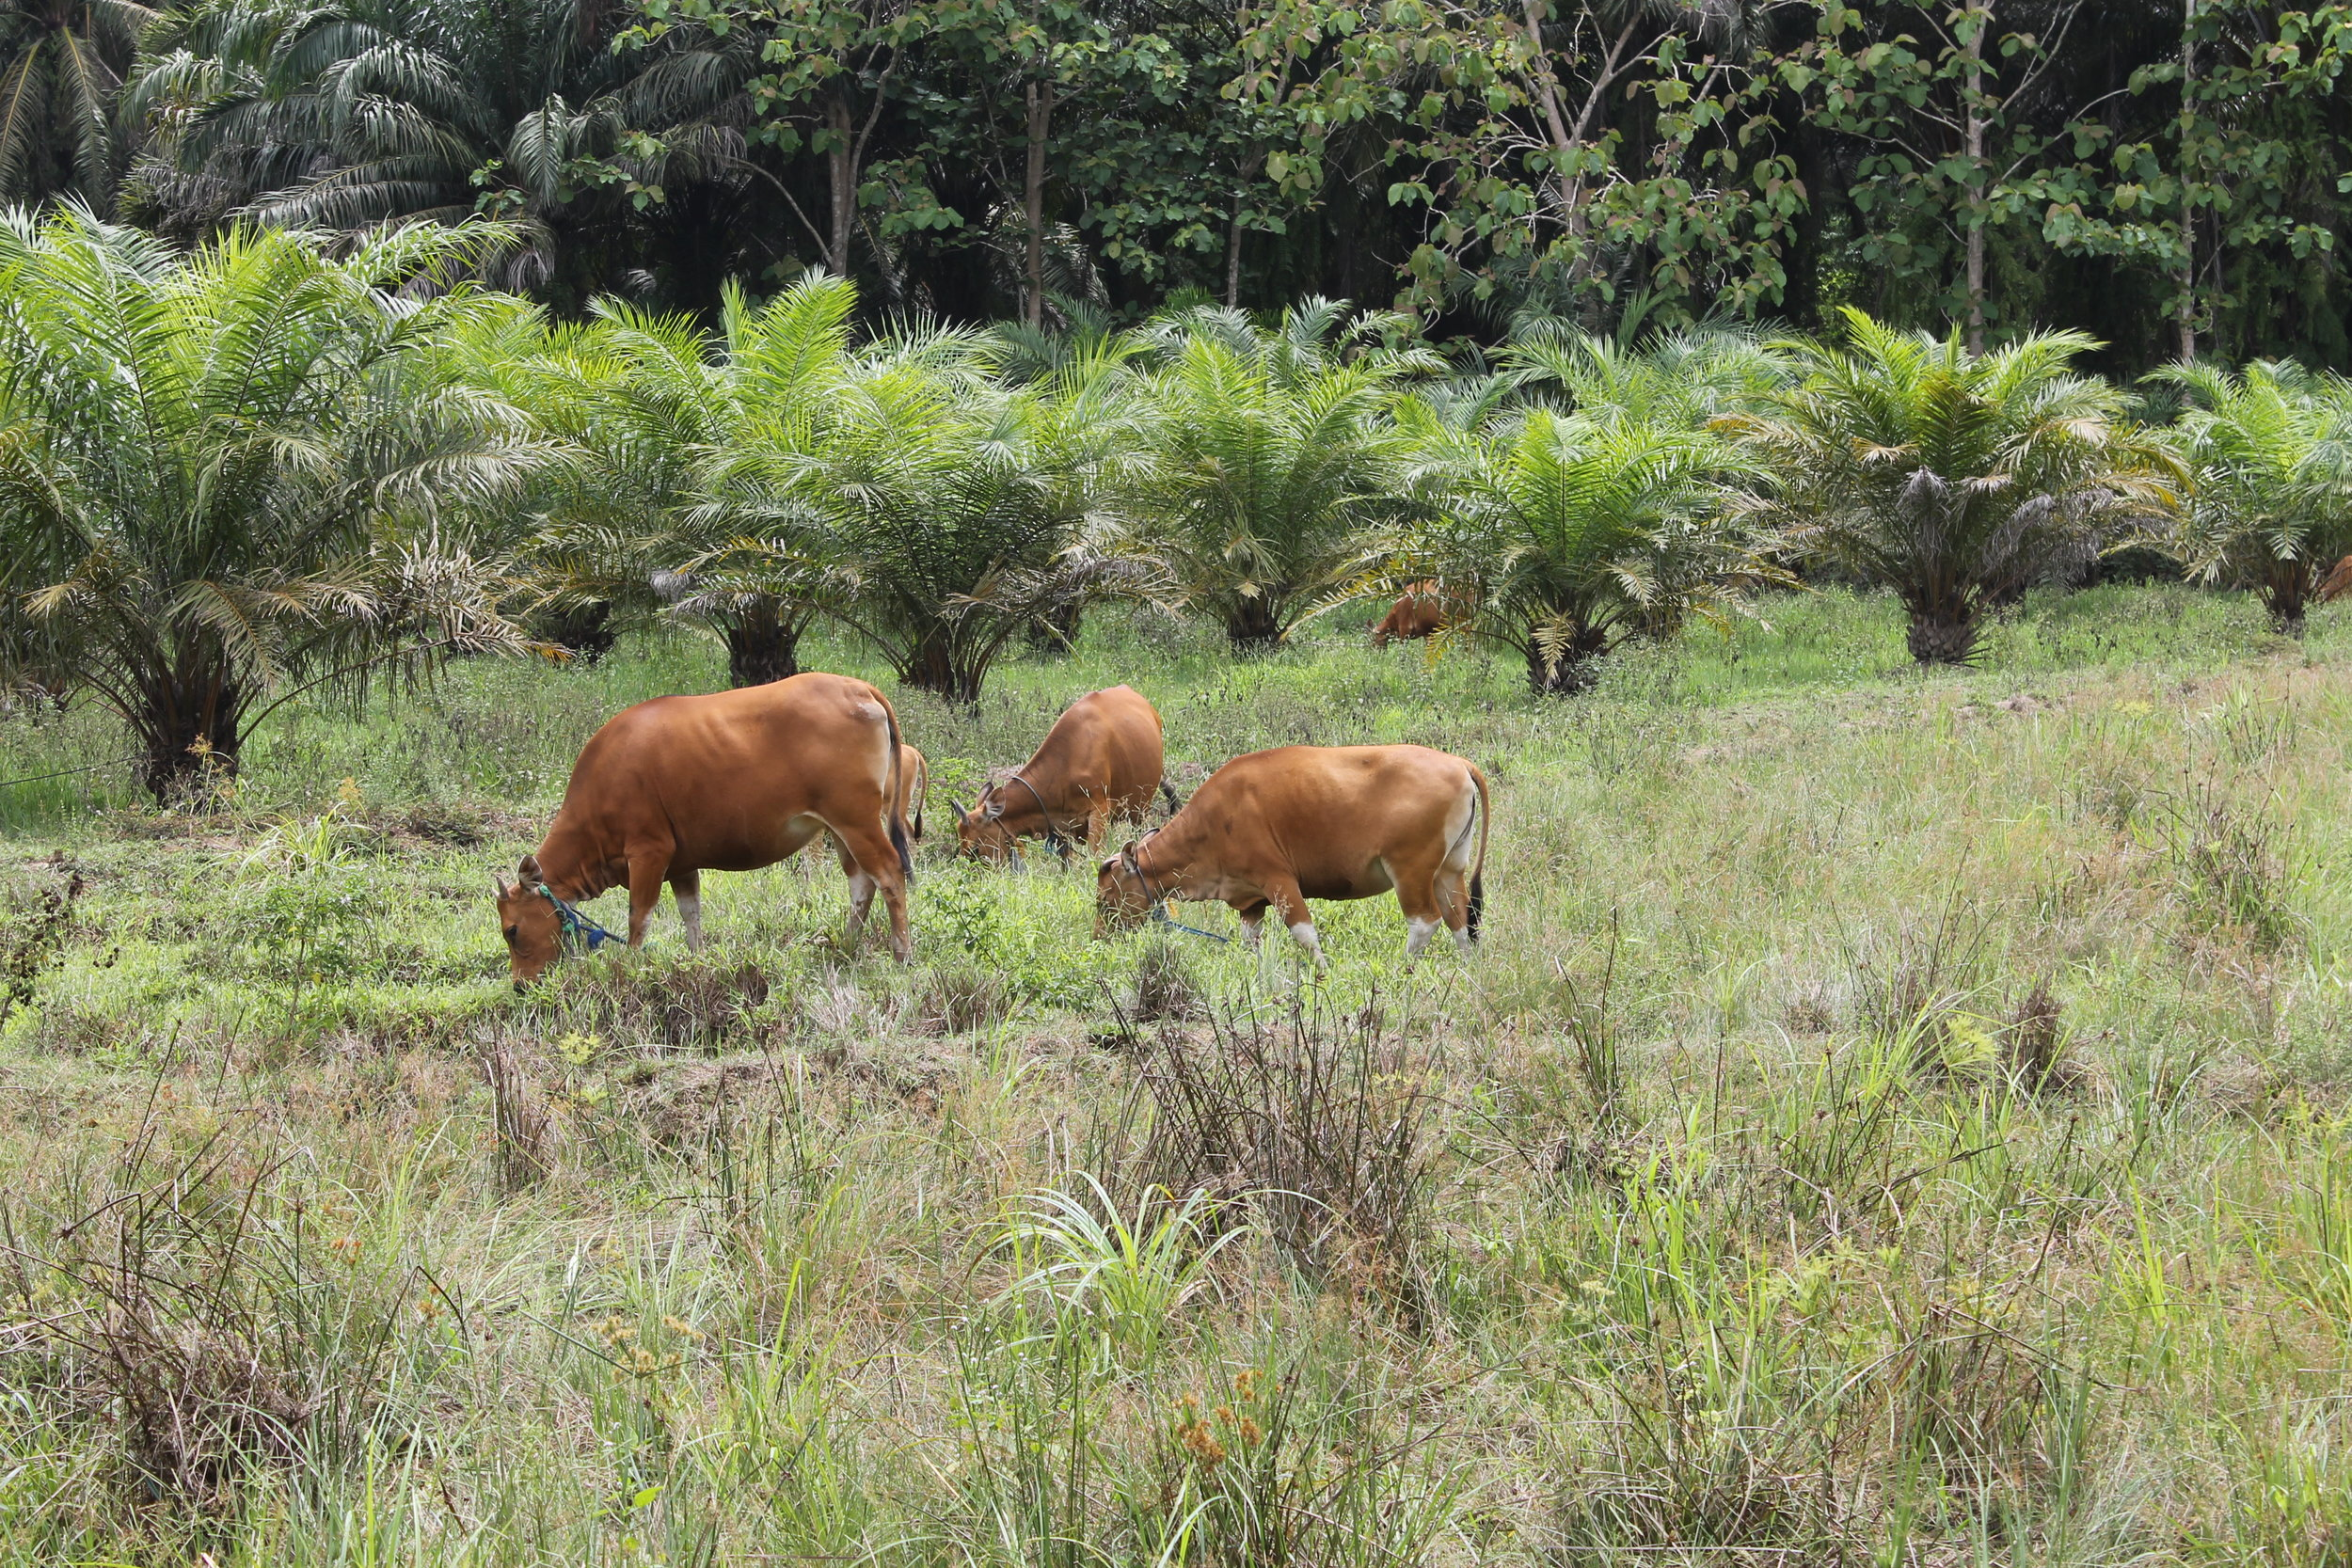 Bali cattle in an extensive grazing system incorporating oil palm plantations in Paser District, East Kalimantan.